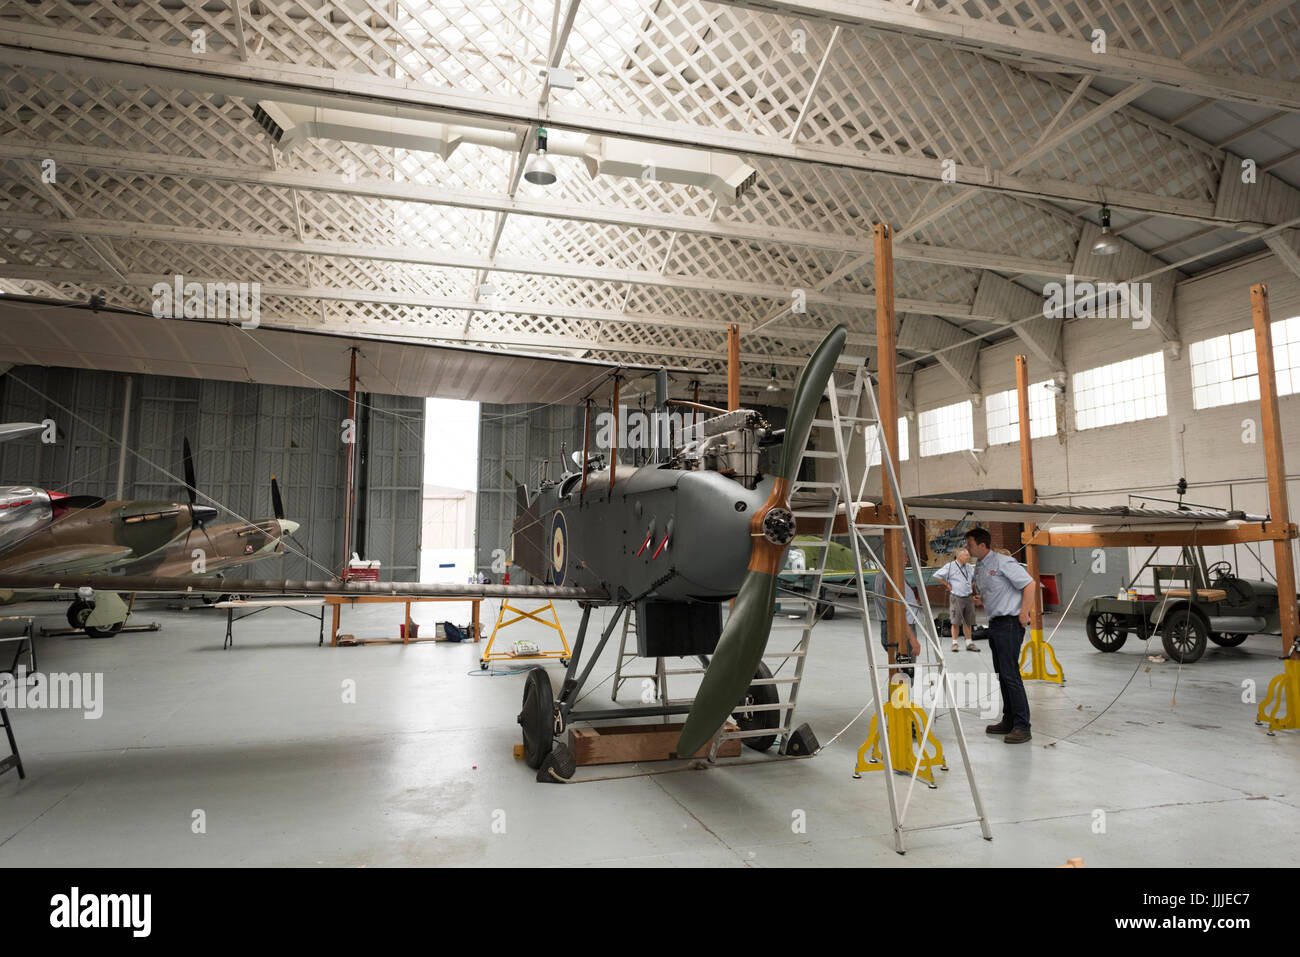 Duxford Cambridgeshire, UK. 20th July, 2017. A rare first World War De Havilland DH9 bomber aircraft has been fully restored and is now being assembled for display and flight at the Imperial War Museum. The plane is 100 years old, being assembled in a WW1 hanger on the 100th anniversary of the Imperial War Museum. The plane is the only one in the UK and has been restored after being found in an elephant stable at the Palace of Bikaner, Rajasthan, India. Credit: Julian Eales/Alamy Live News Stock Photo